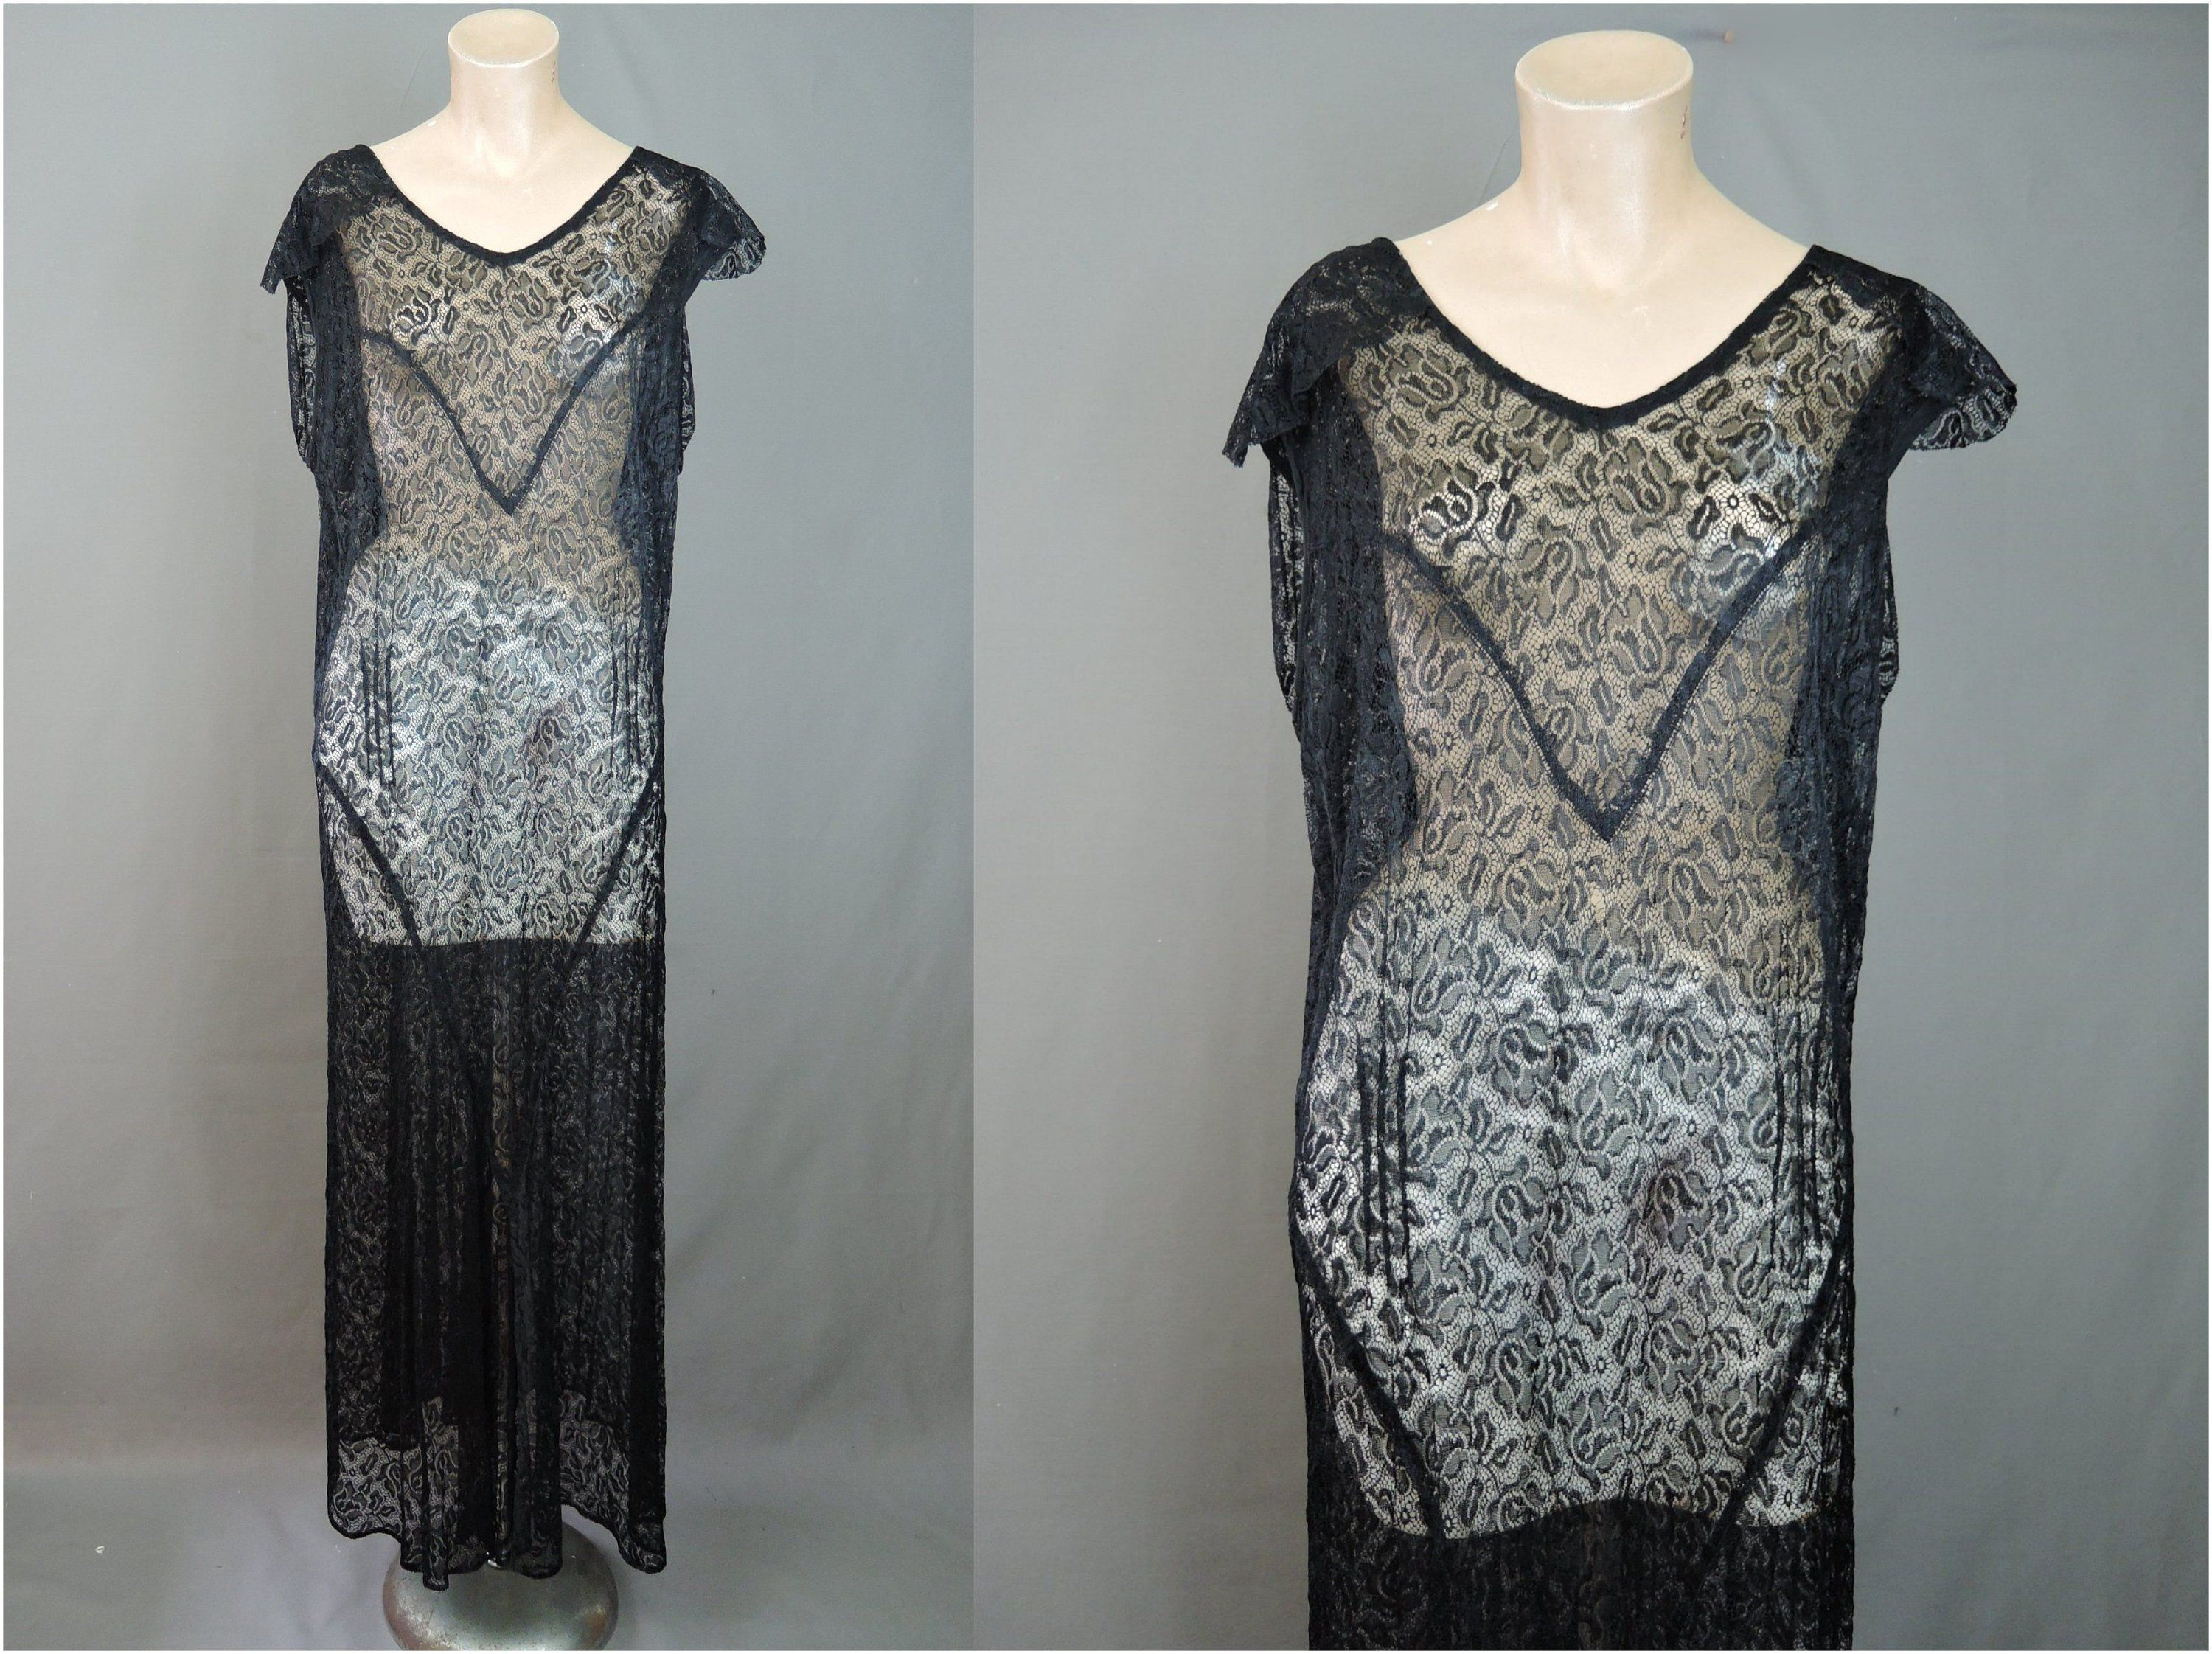 Vintage 1920s Black Lace Dress Gown All Sheer Fits 36 37 Etsy Lace Dress Black Lace Dress Dresses [ 2243 x 3000 Pixel ]